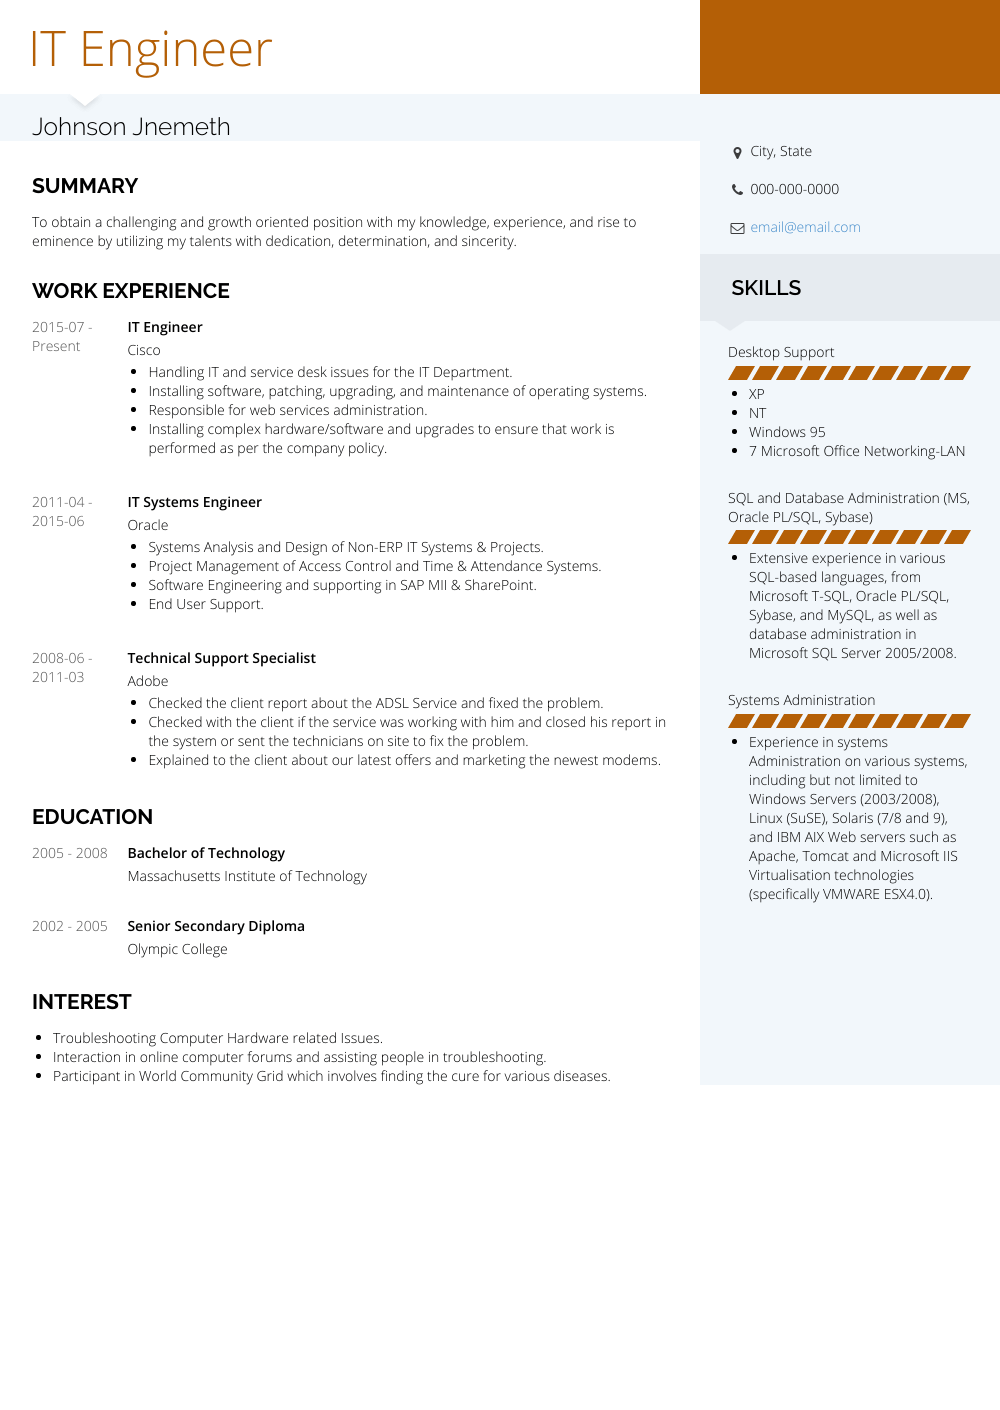 IT Engineer Resume Sample